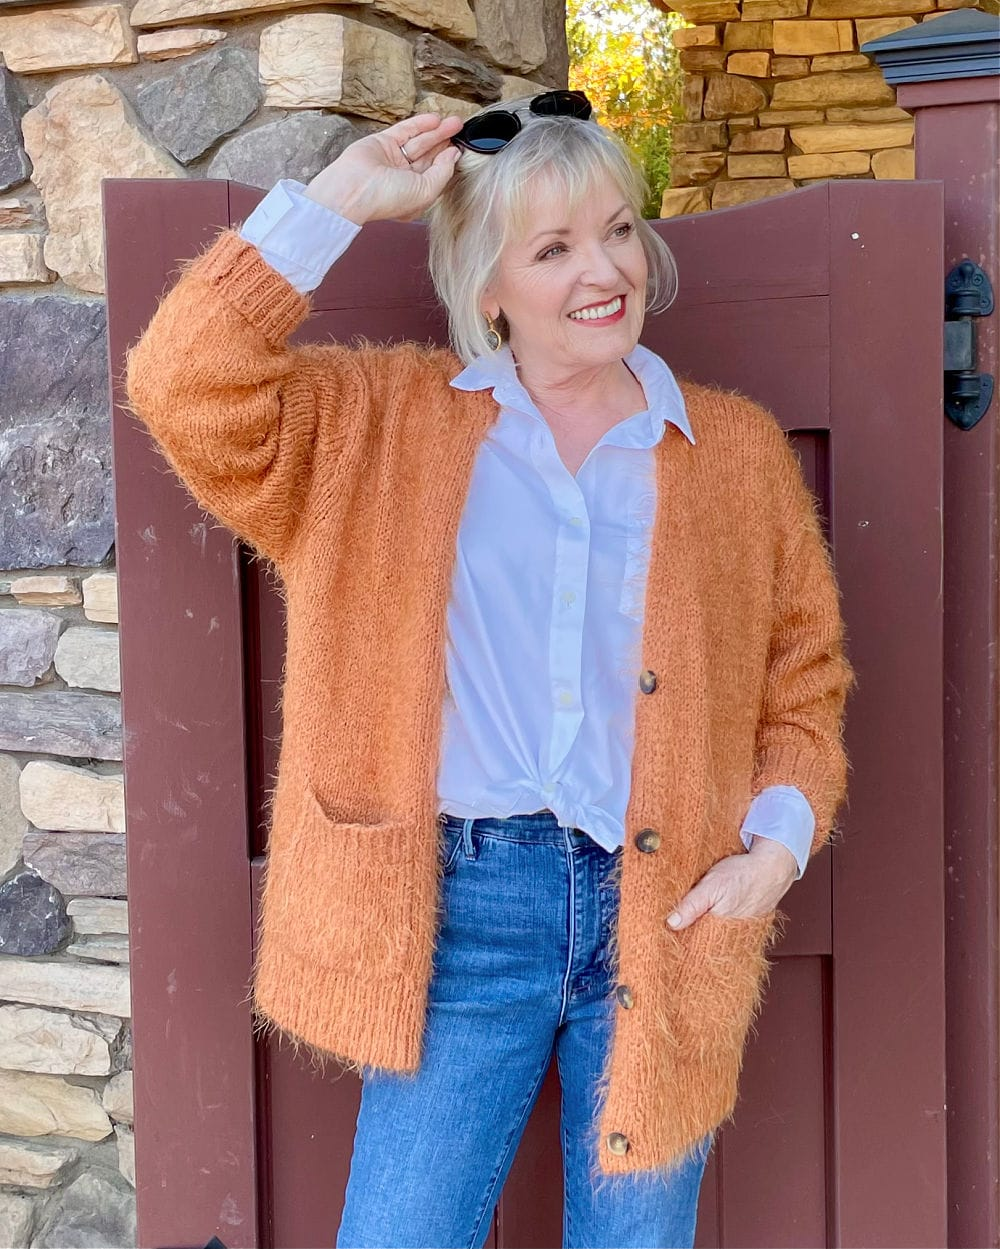 wearing rust cardigan with jeans and white shirt